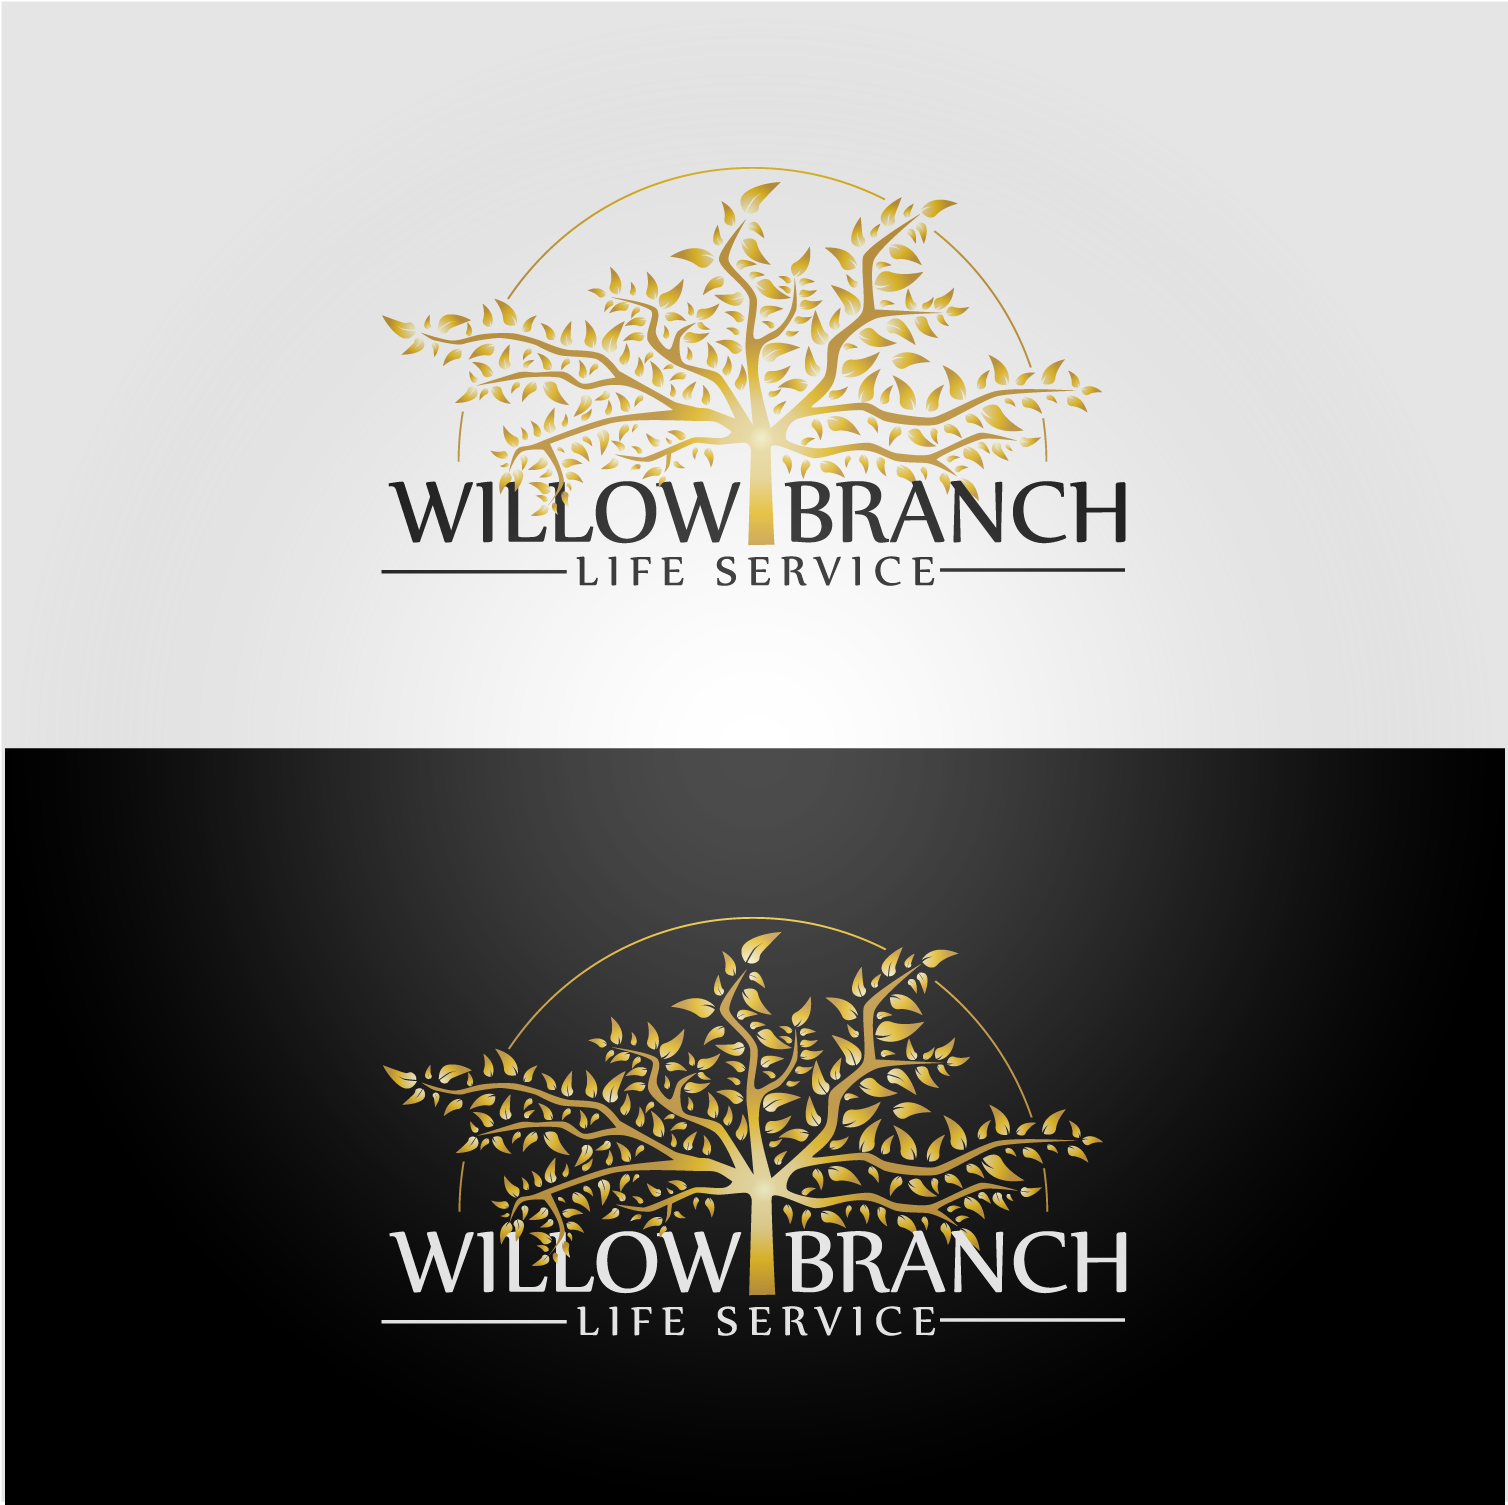 Logo Design by Batter Fly - Entry No. 105 in the Logo Design Contest Artistic Logo Design for Willow Branch Life Service.